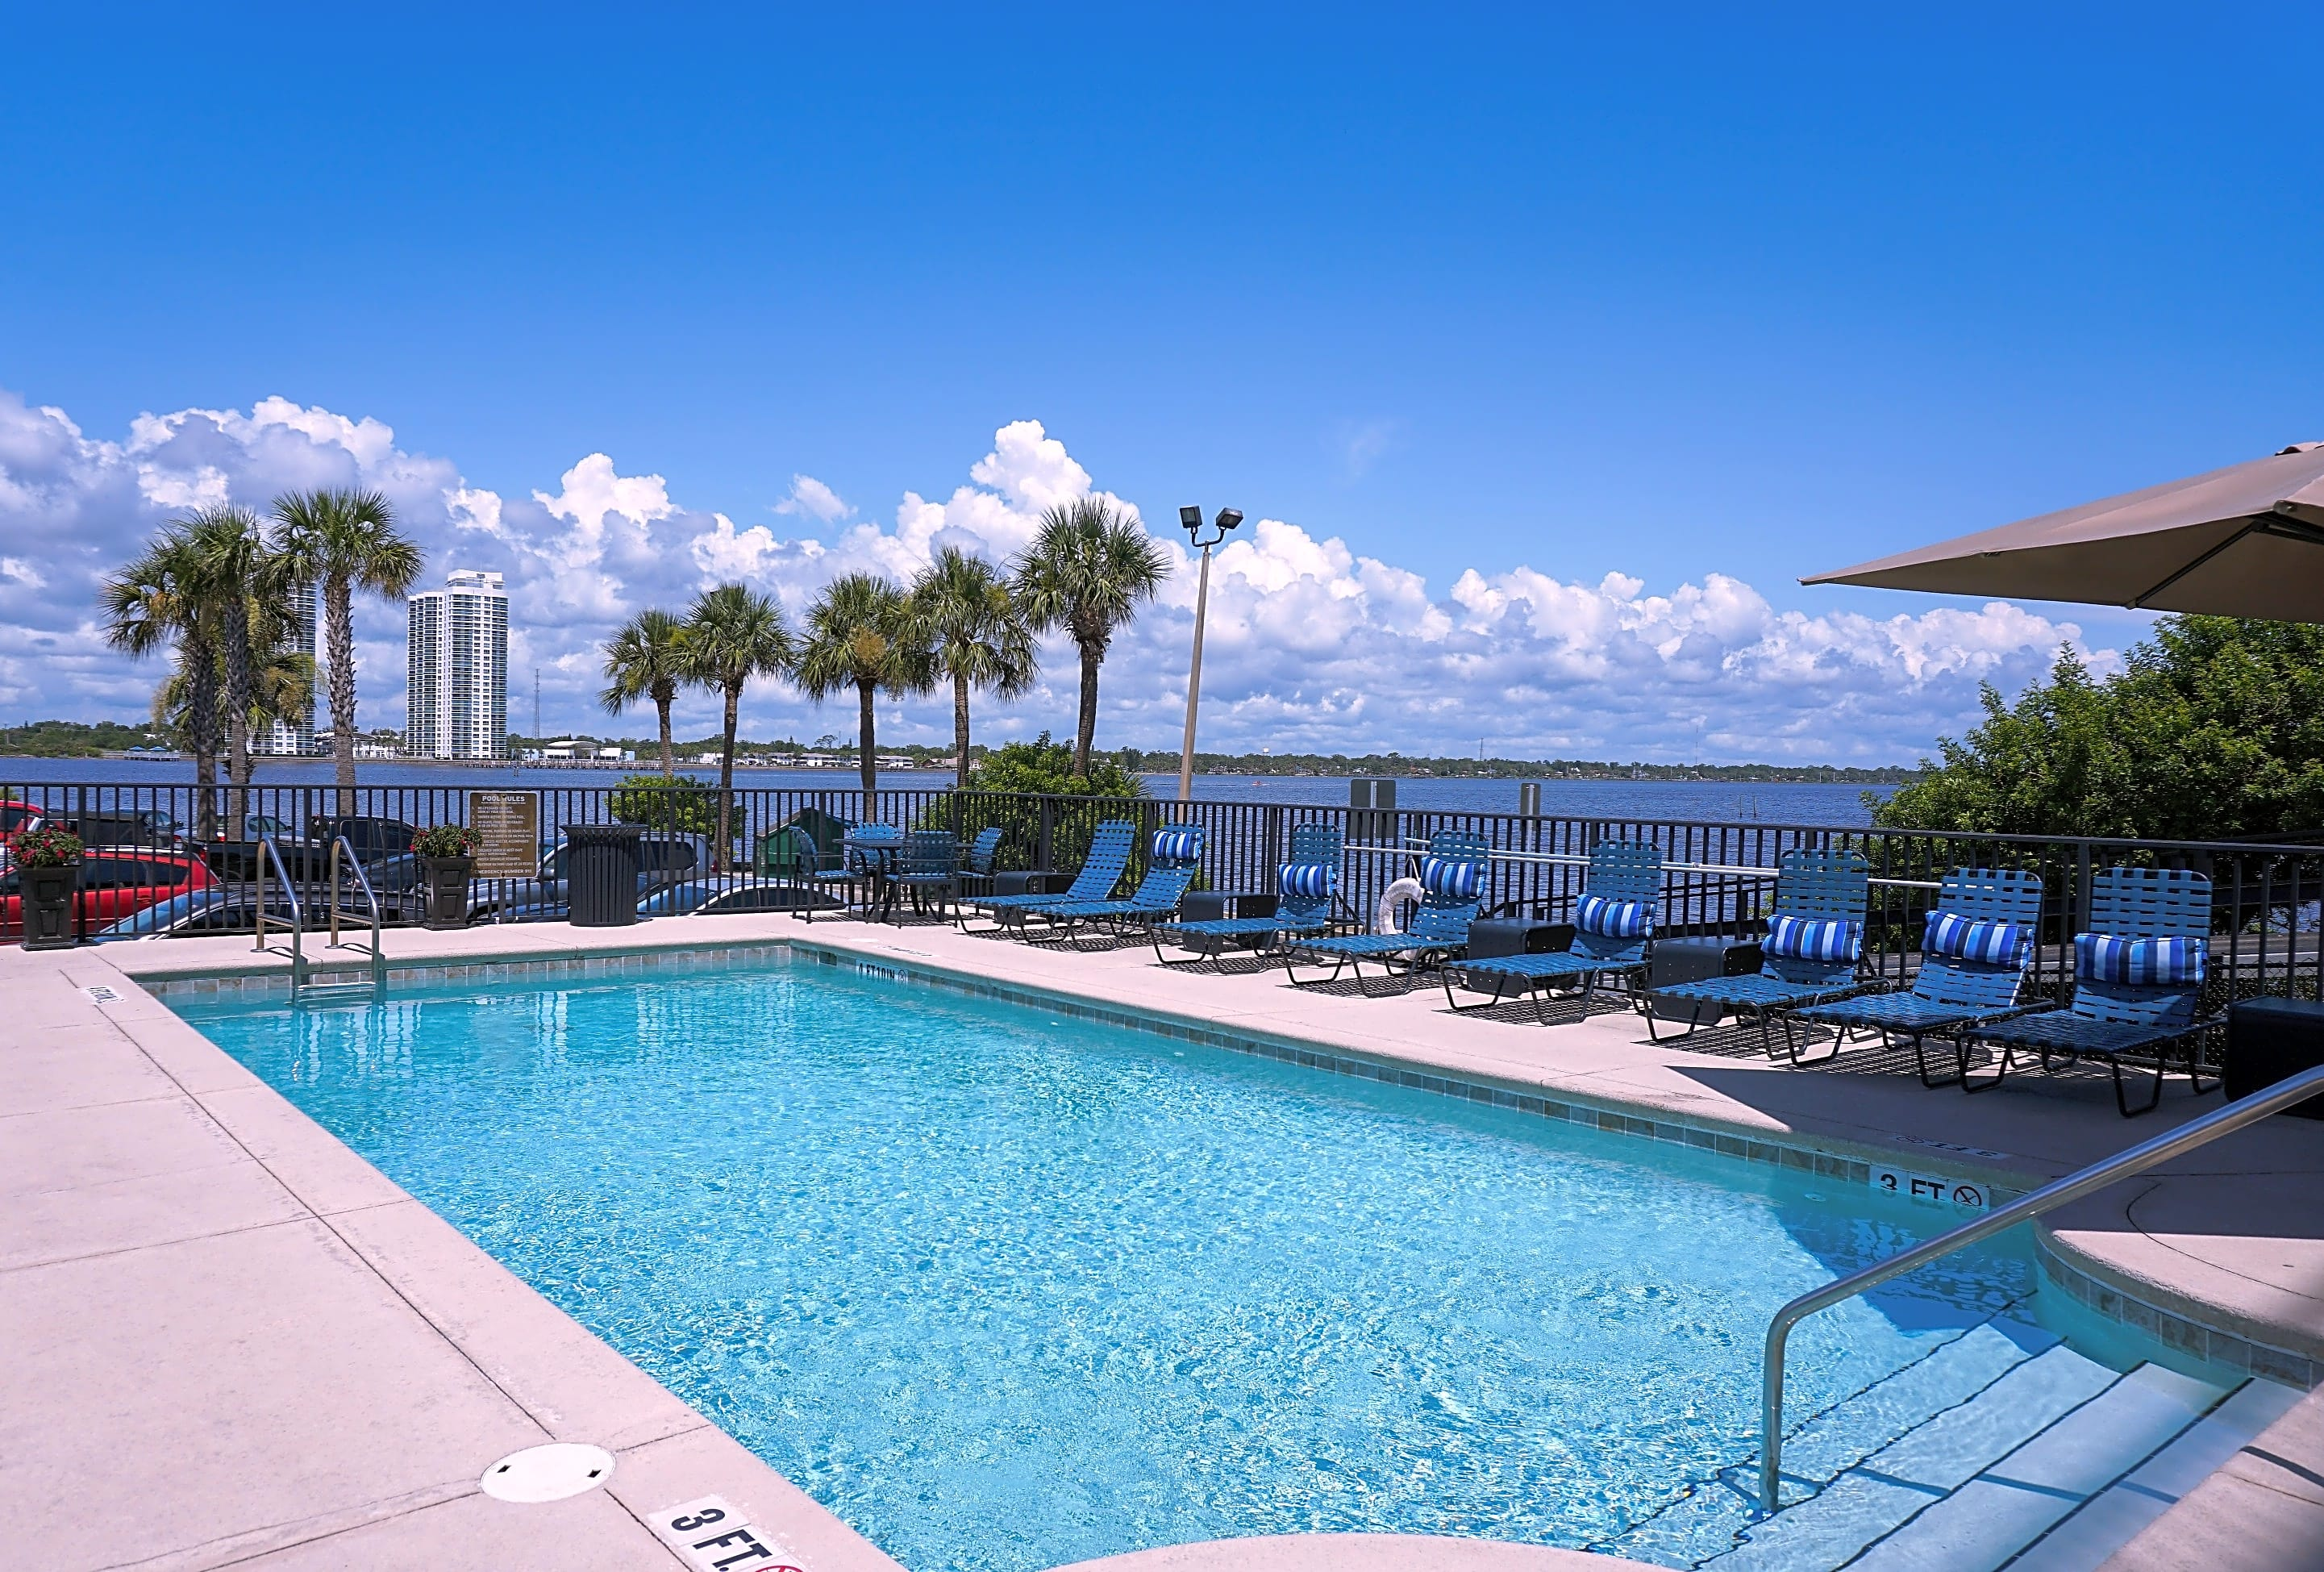 Swimming Pool with Sundeck Seating Overlooking the Intracoastal Waterway